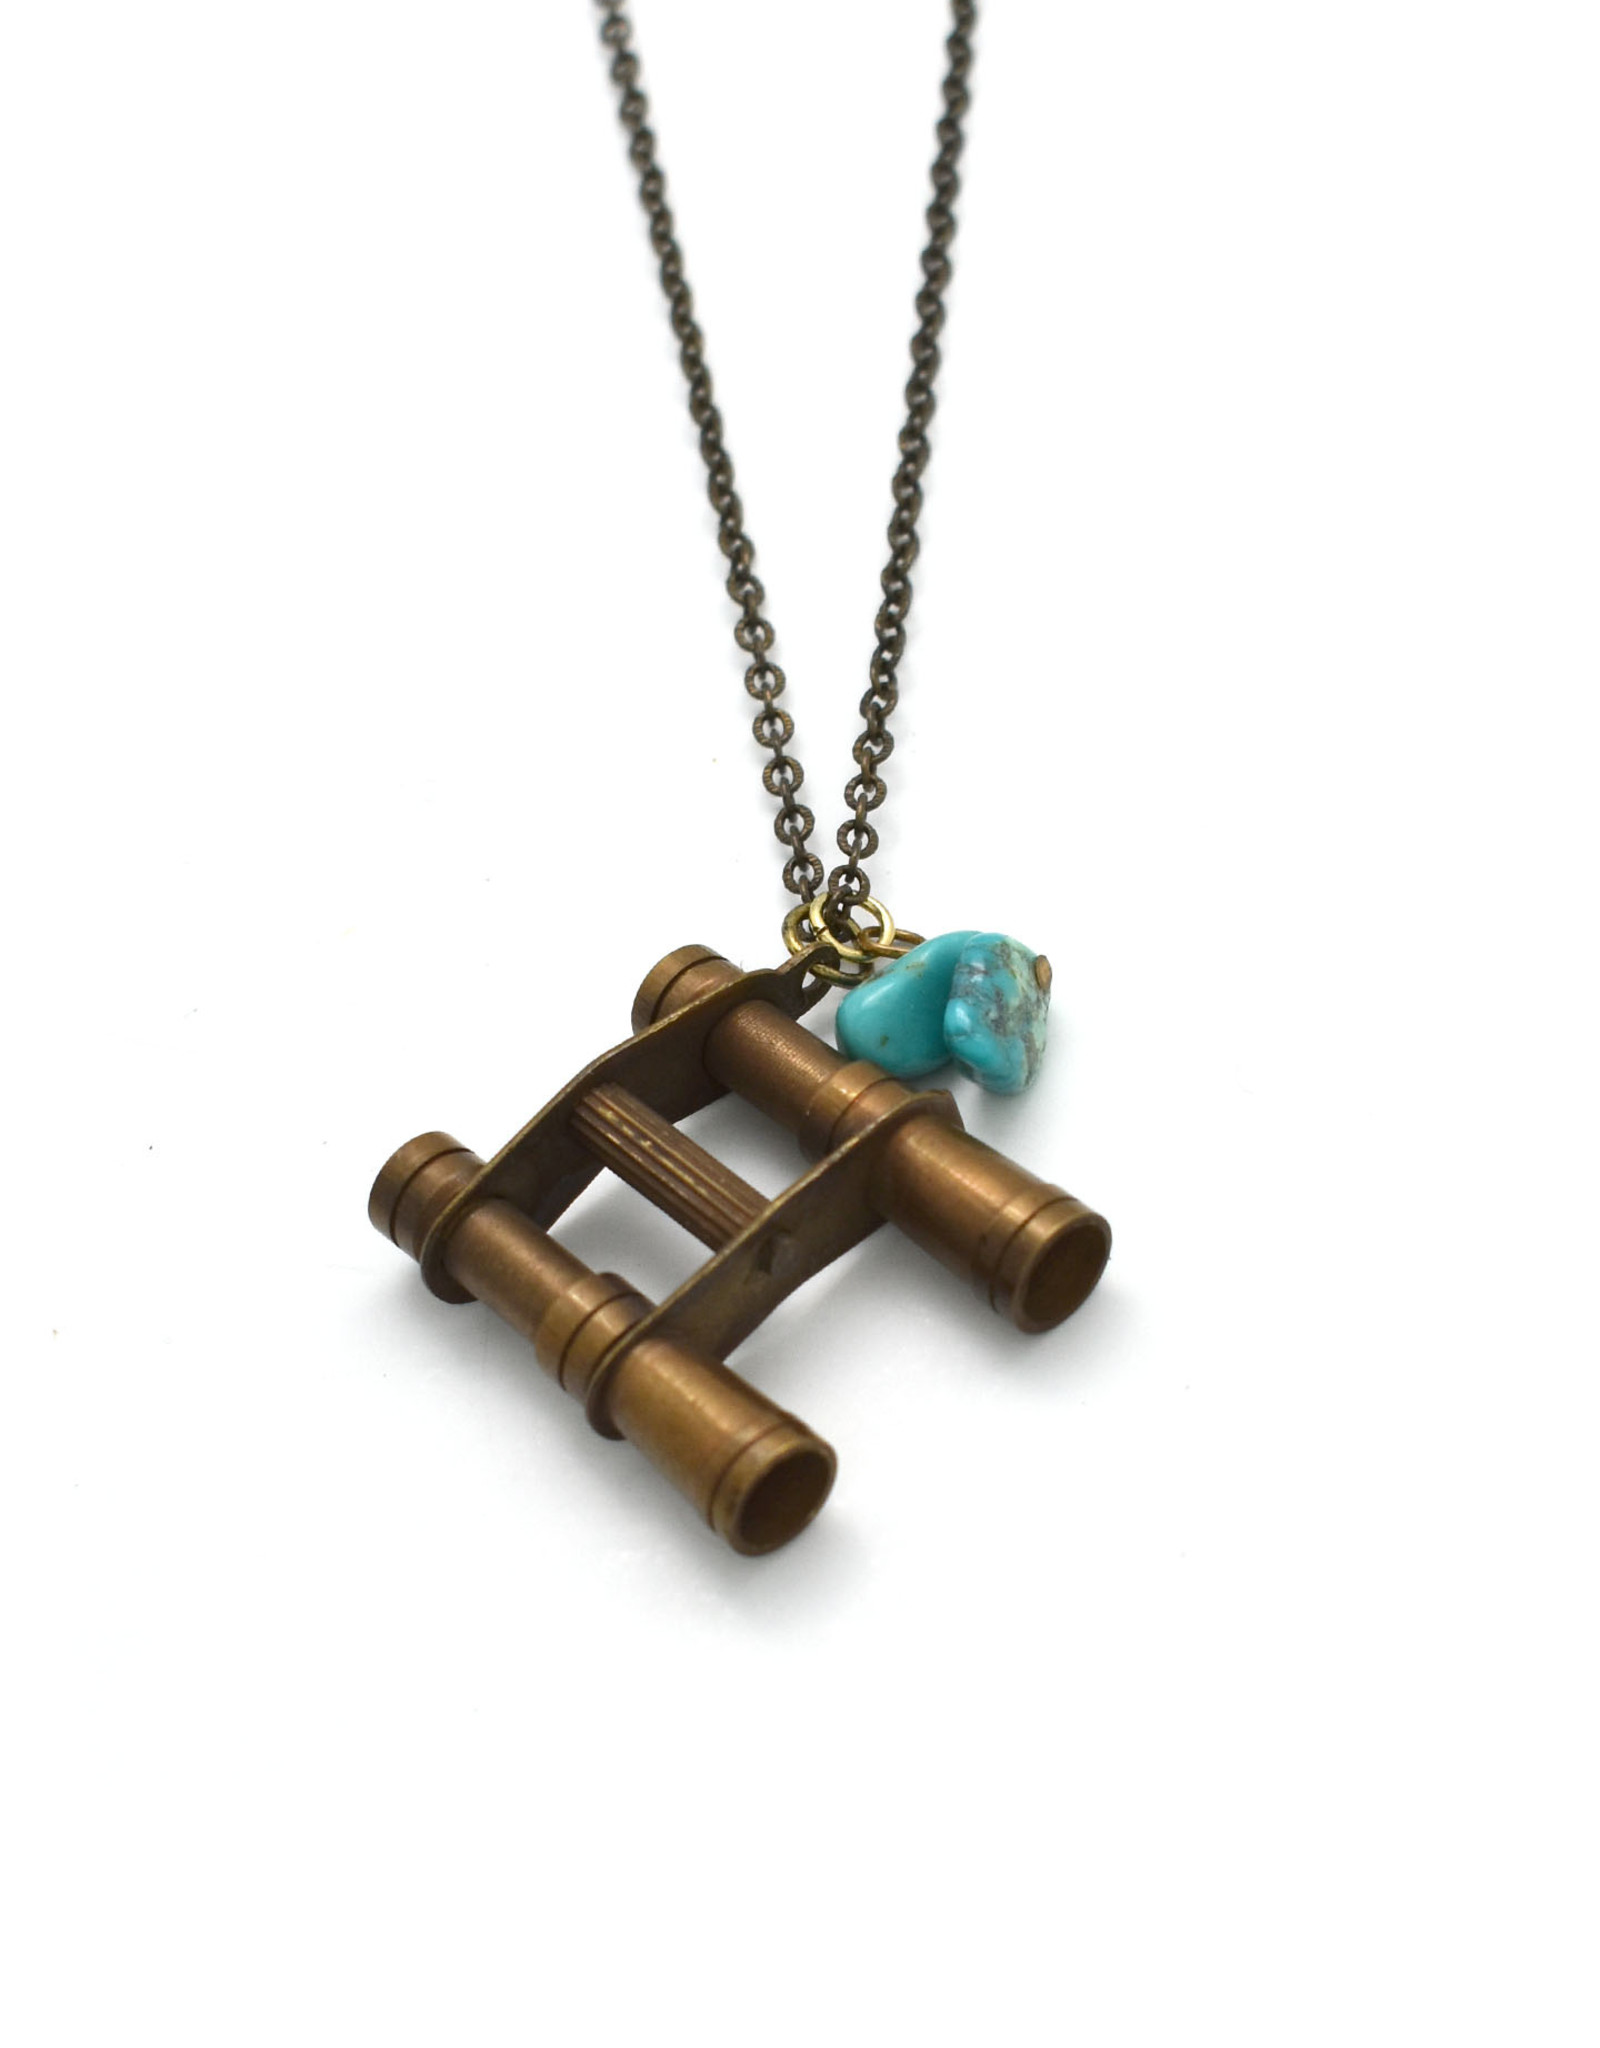 Brass Binoculars and Turquoise Bead Necklace